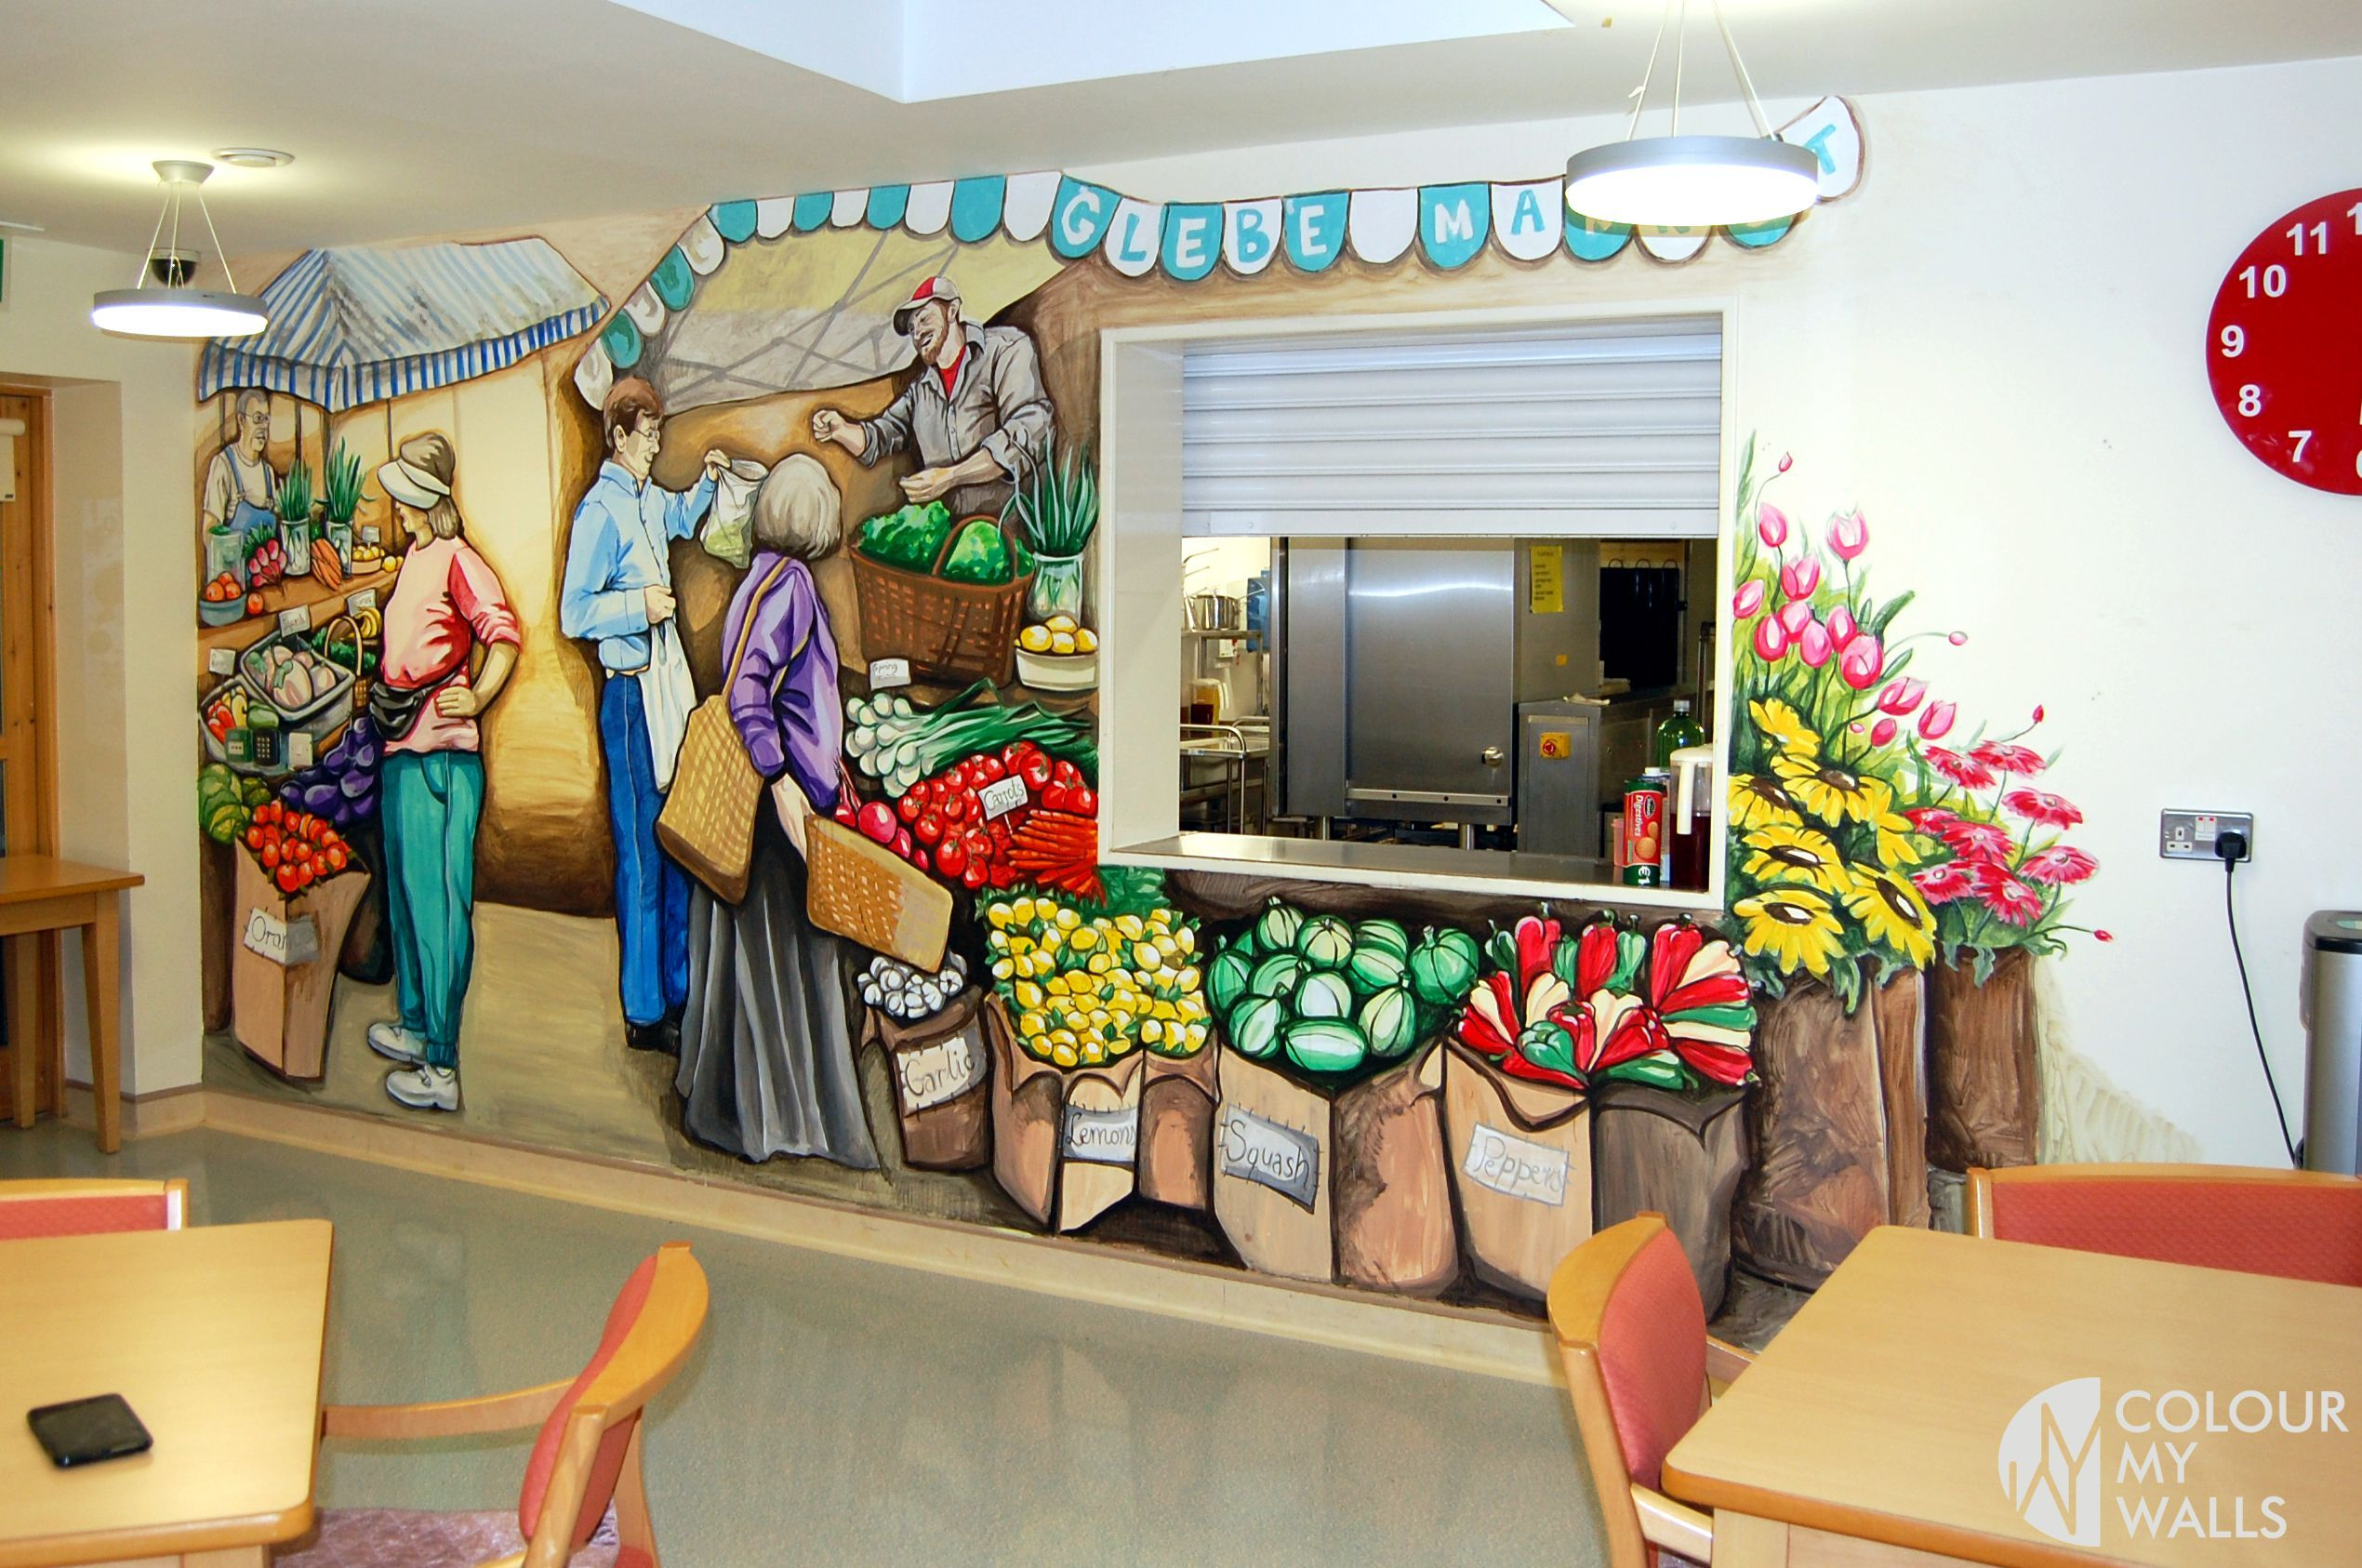 Hand Painted Wall Dining Room Market Vegetables Graffiti The Art Of